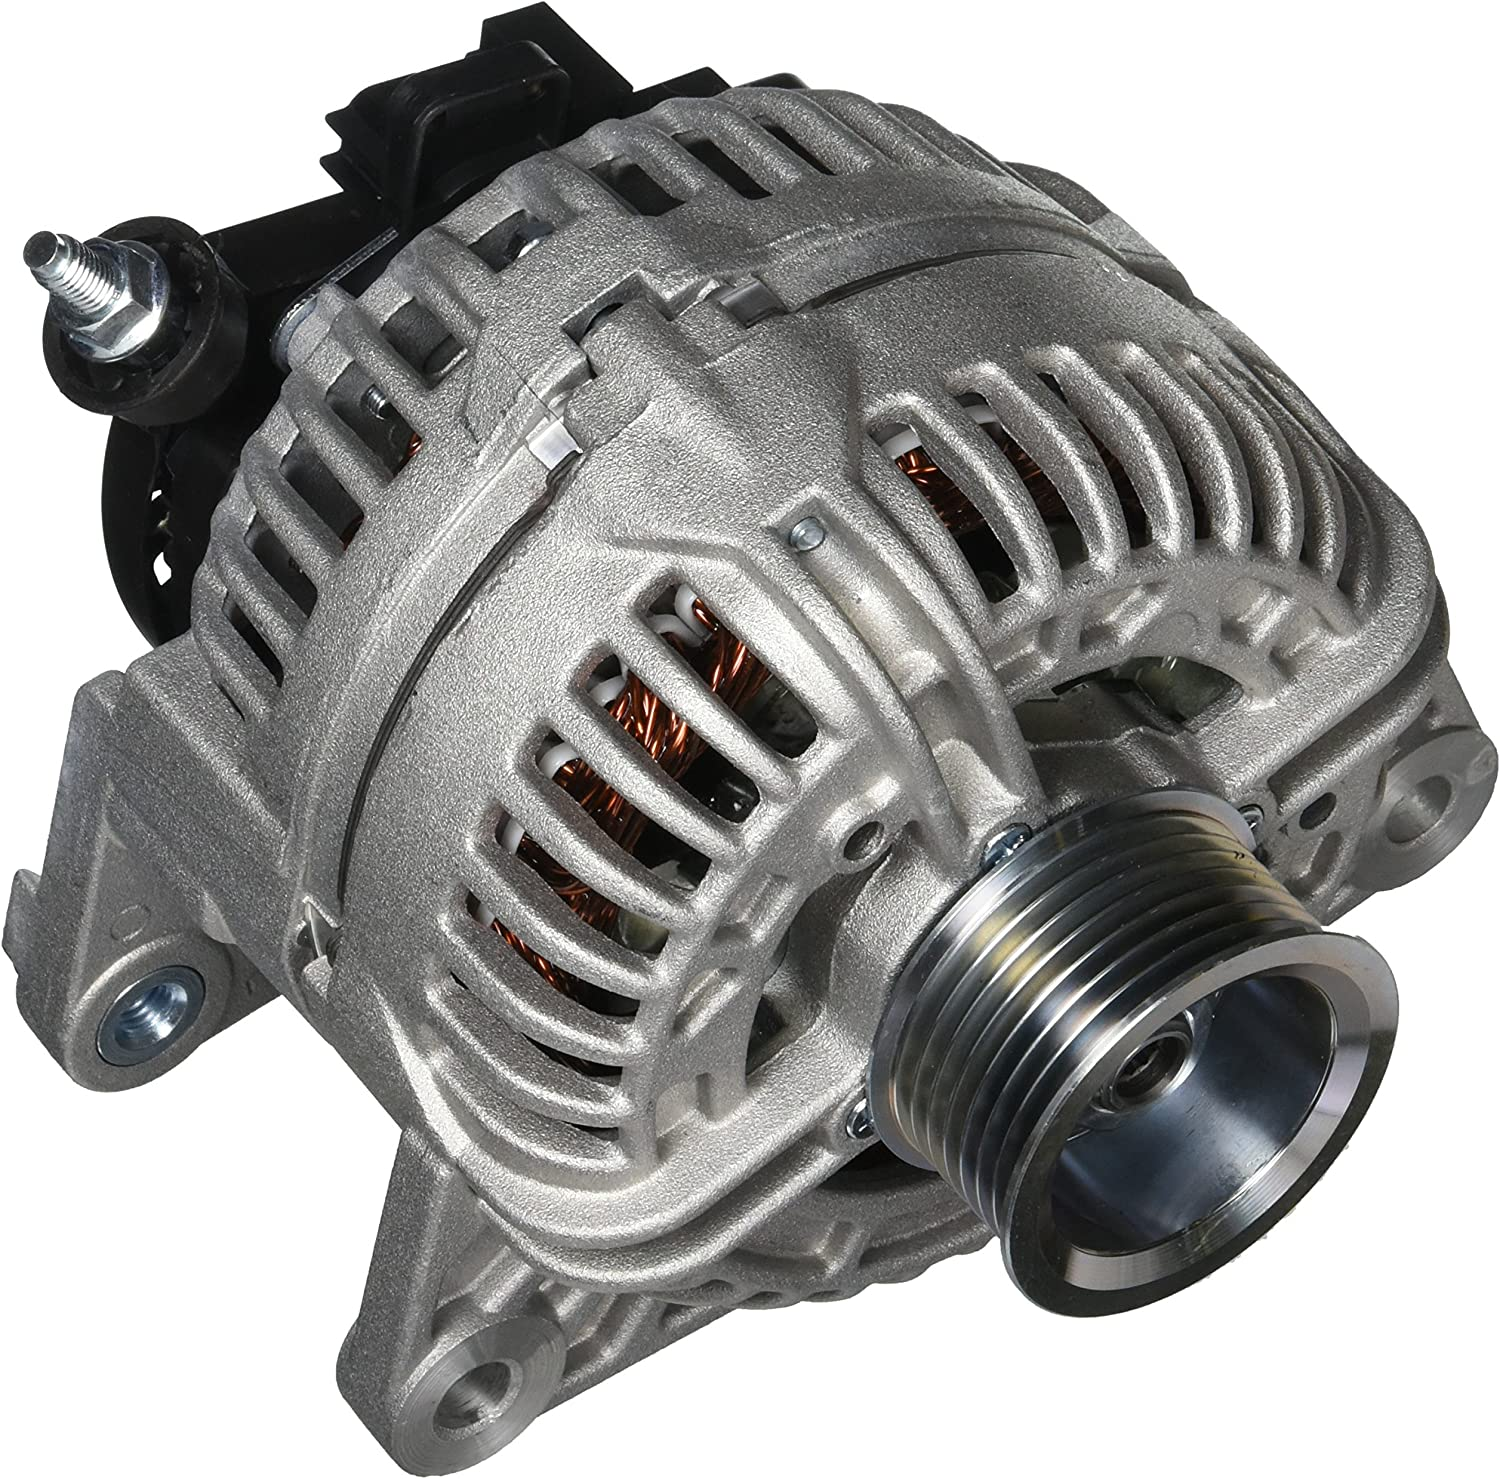 Quality-Built 11233 Remanufactured Premium Quality Alternator